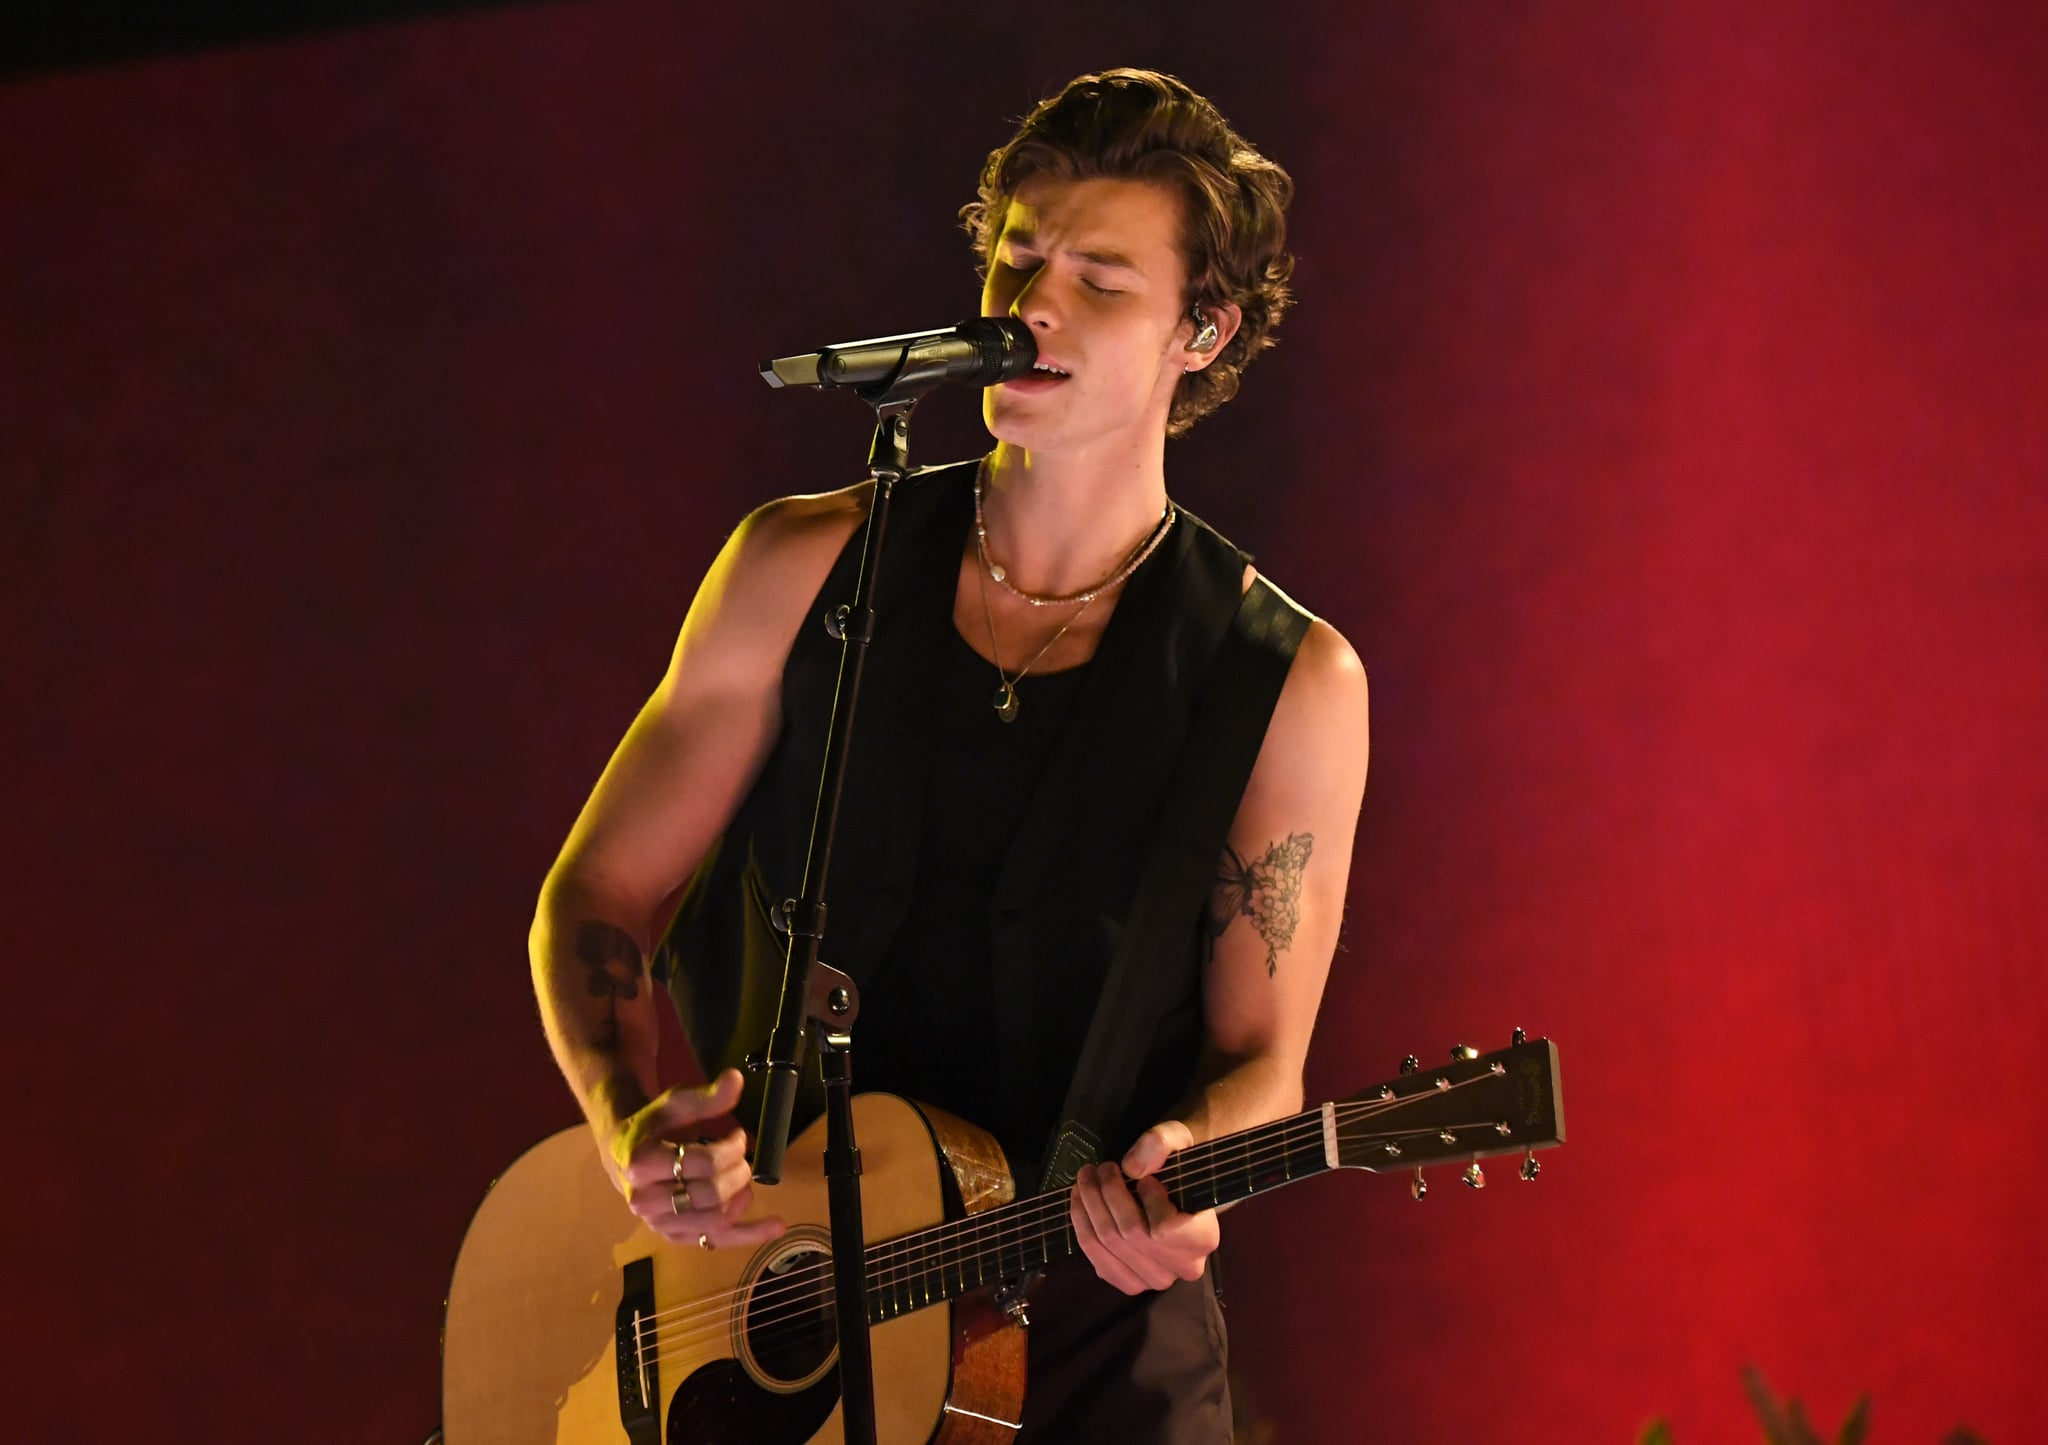 LOS ANGELES, CALIFORNIA - NOVEMBER 24: Shawn Mendes performs onstage during the 2019 American Music Awards at Microsoft Theater on November 24, 2019 in Los Angeles, California. (Photo by Jeff Kravitz/AMA2019/FilmMagic for dcp)